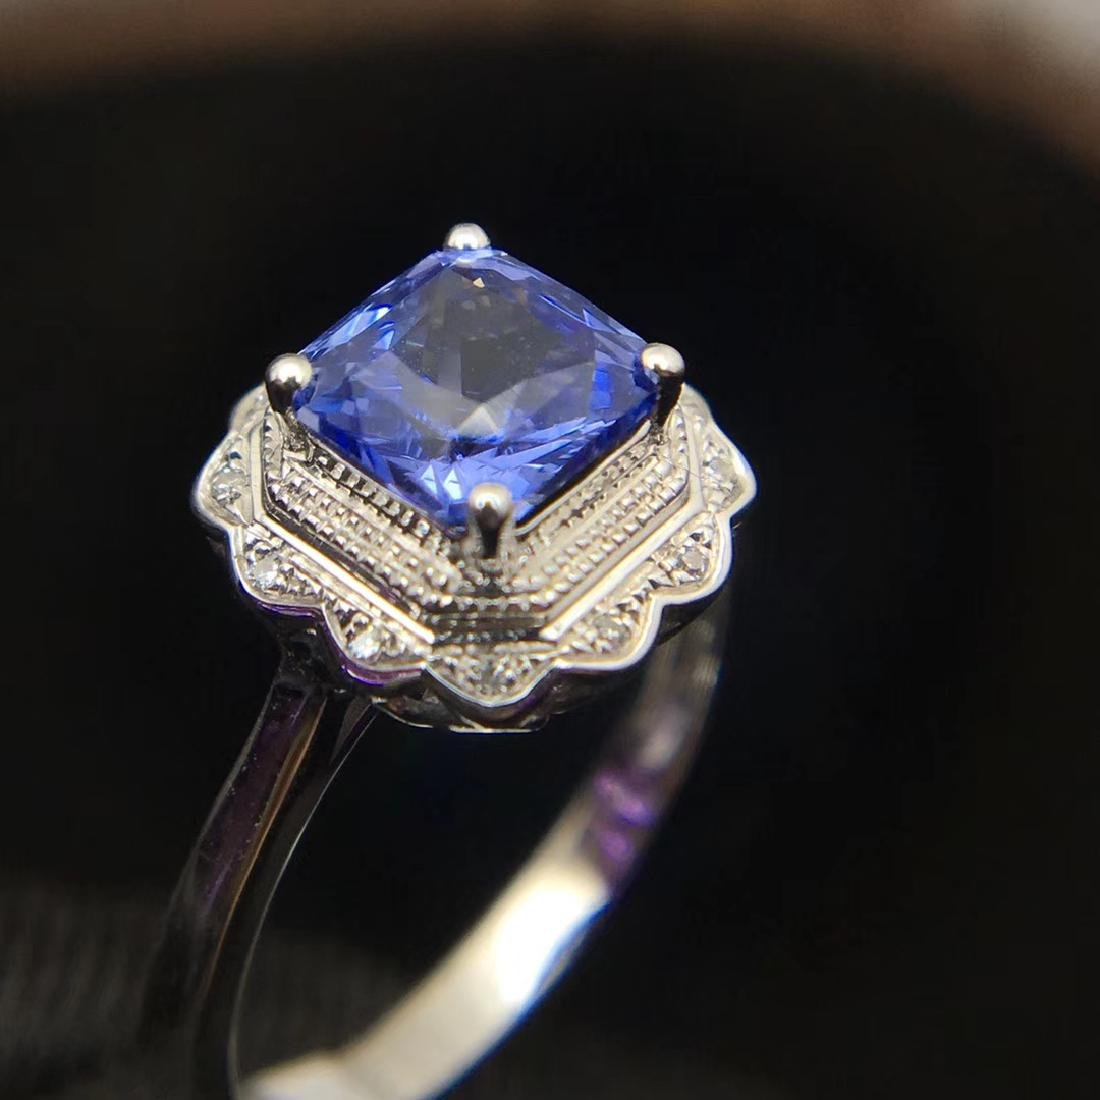 1.24ct Sapphire Ring in 18kt White Gold - 5